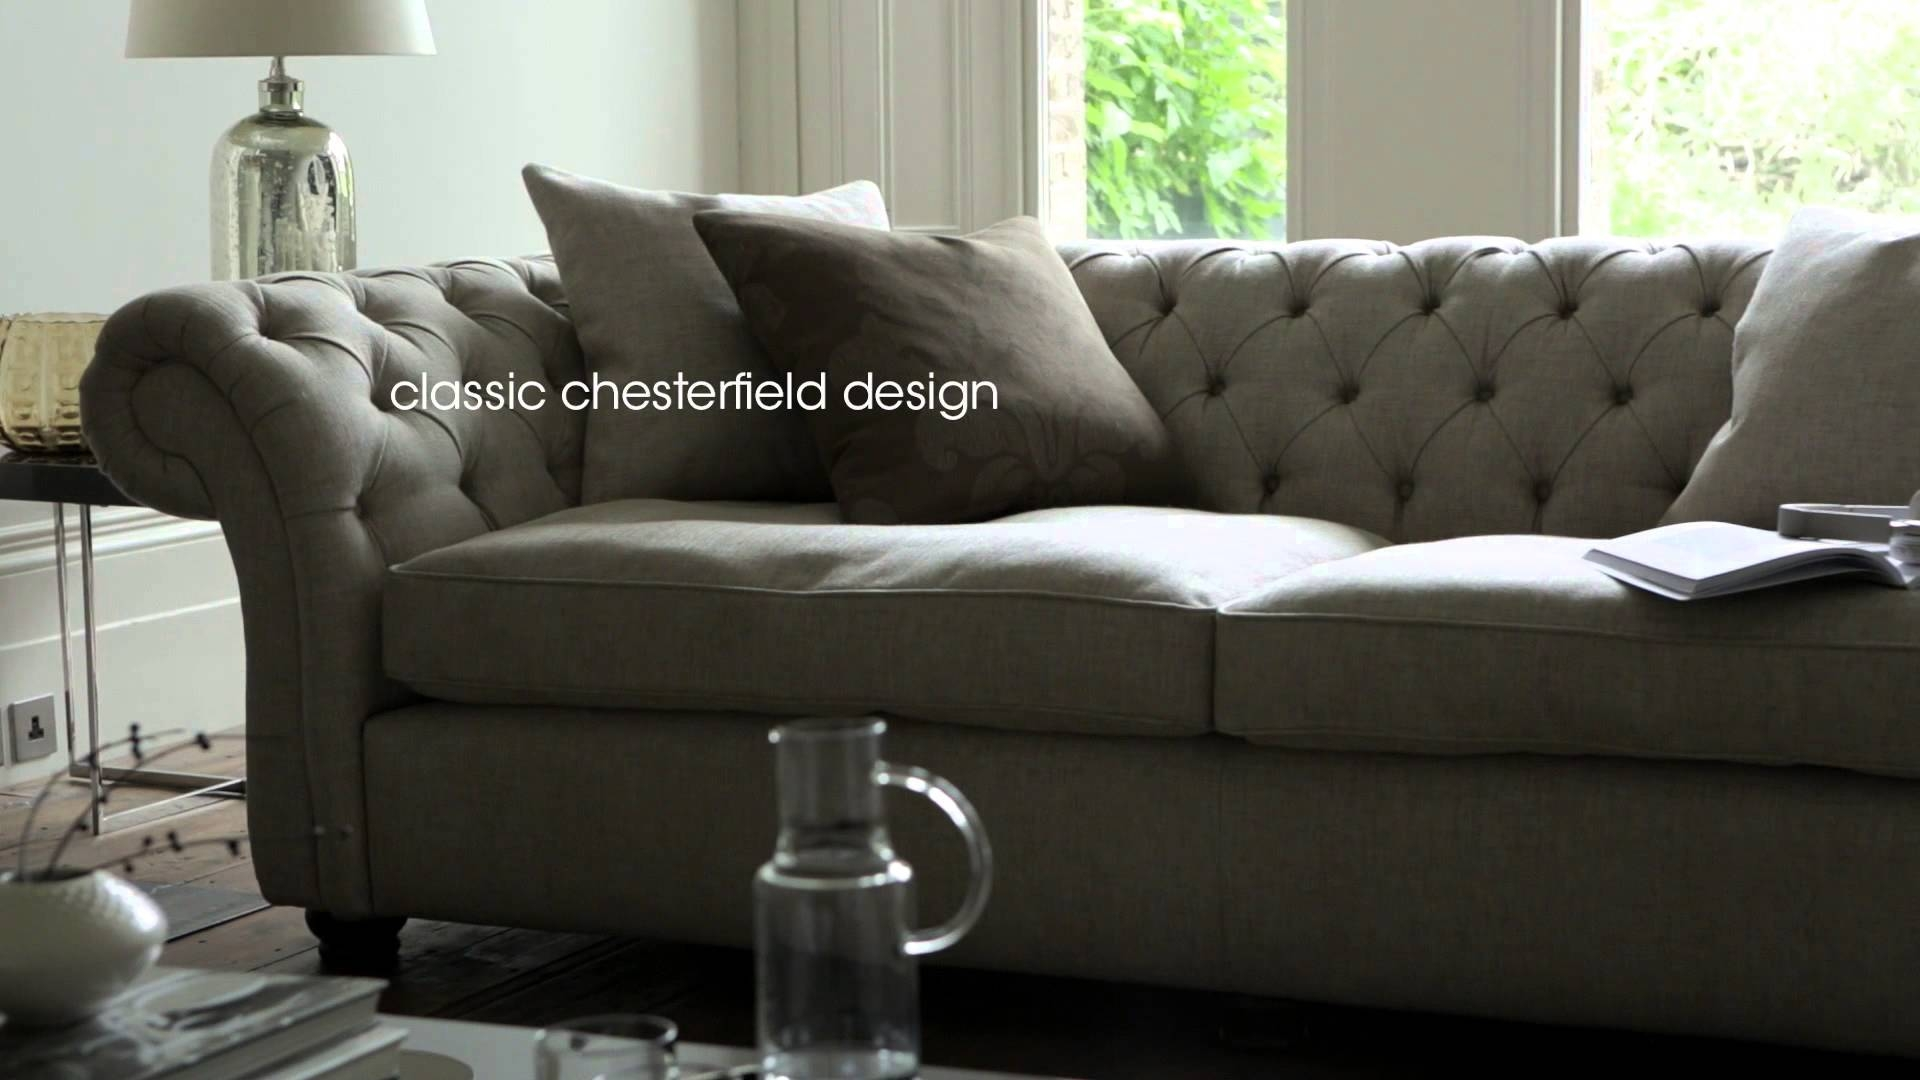 Fabric Chesterfield Sofas & Chairs - Langham Sofas & Furniture with regard to Chesterfield Sofas And Chairs (Image 10 of 15)